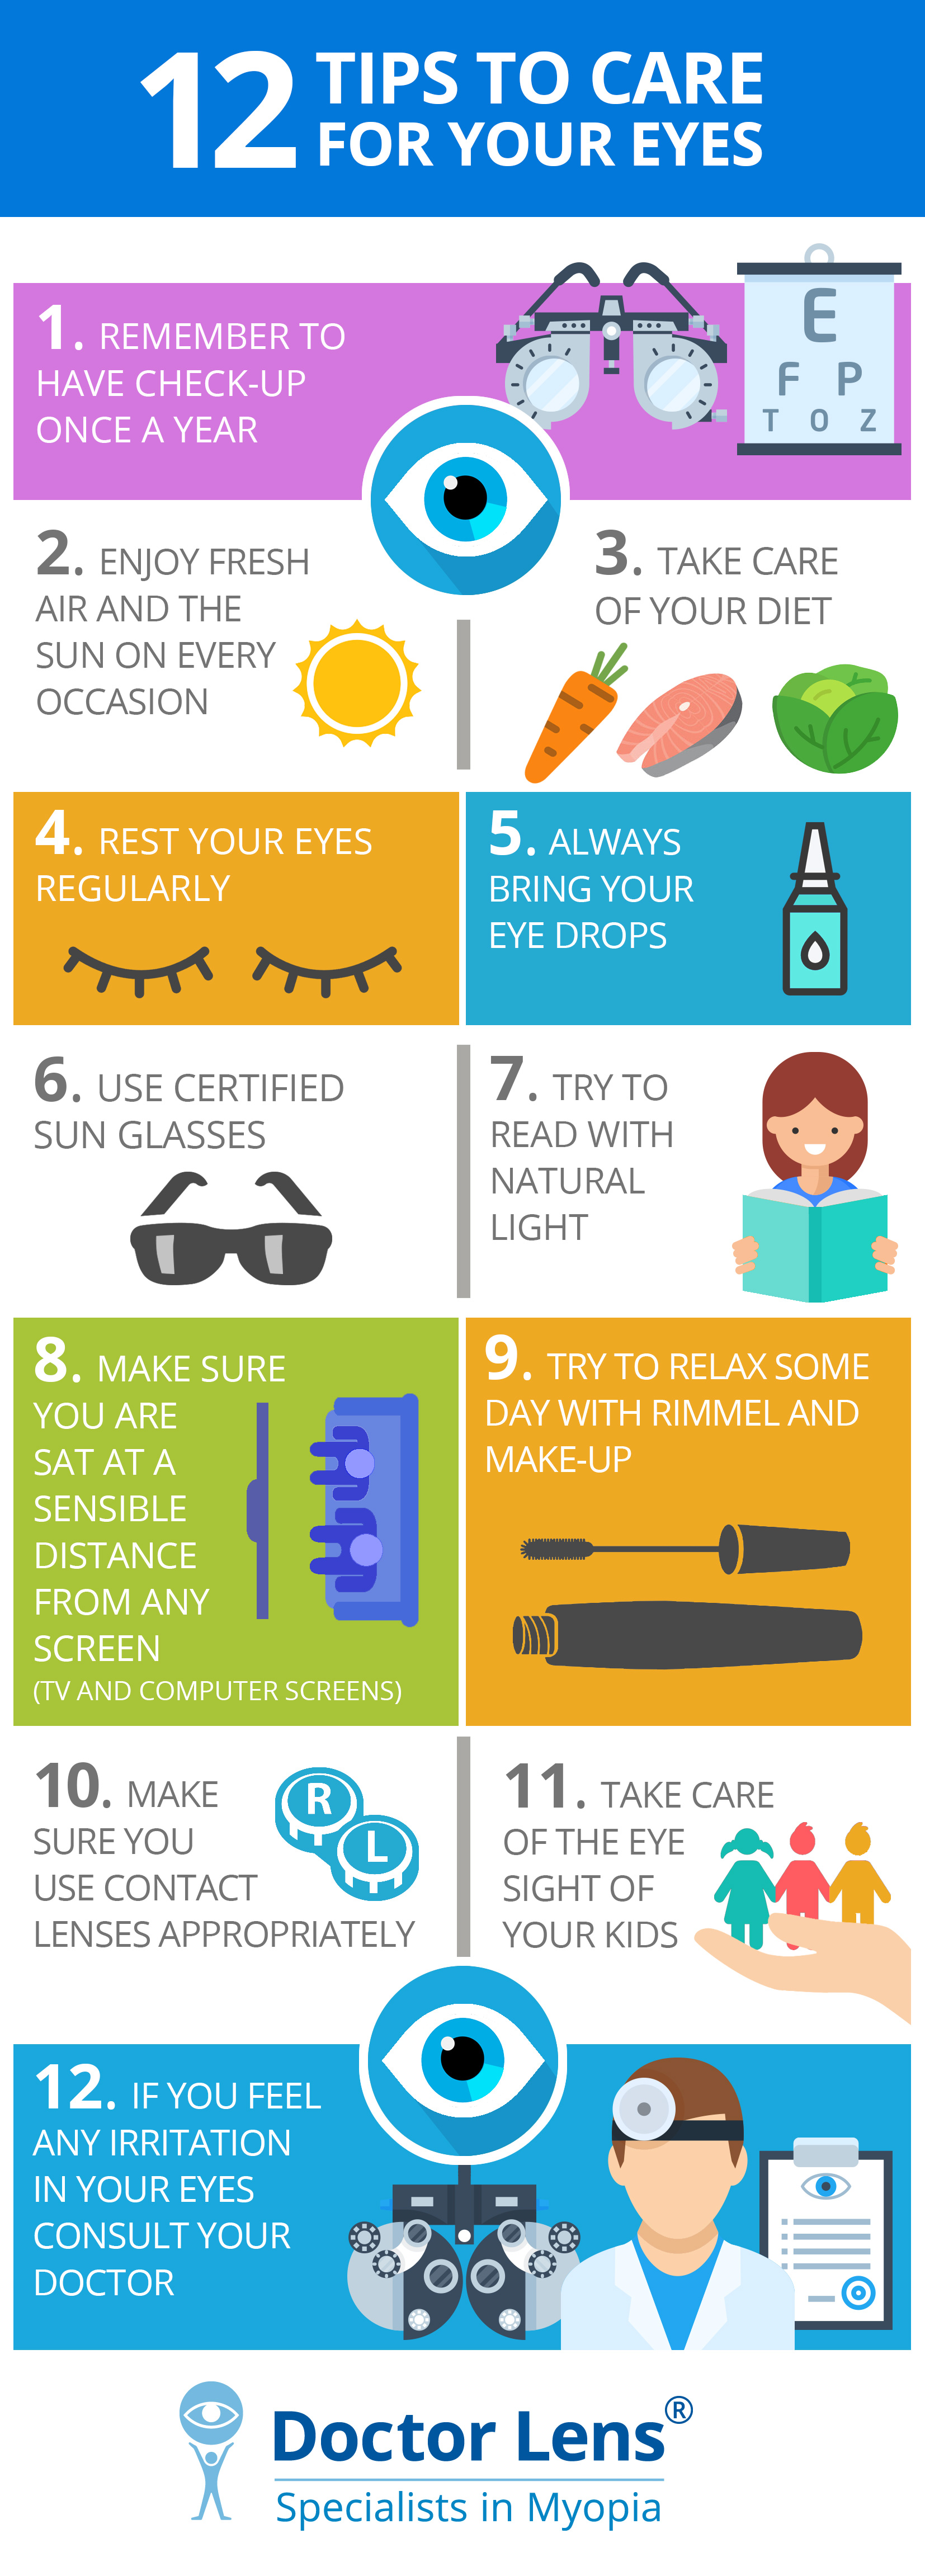 12 Tips to care for your eyes